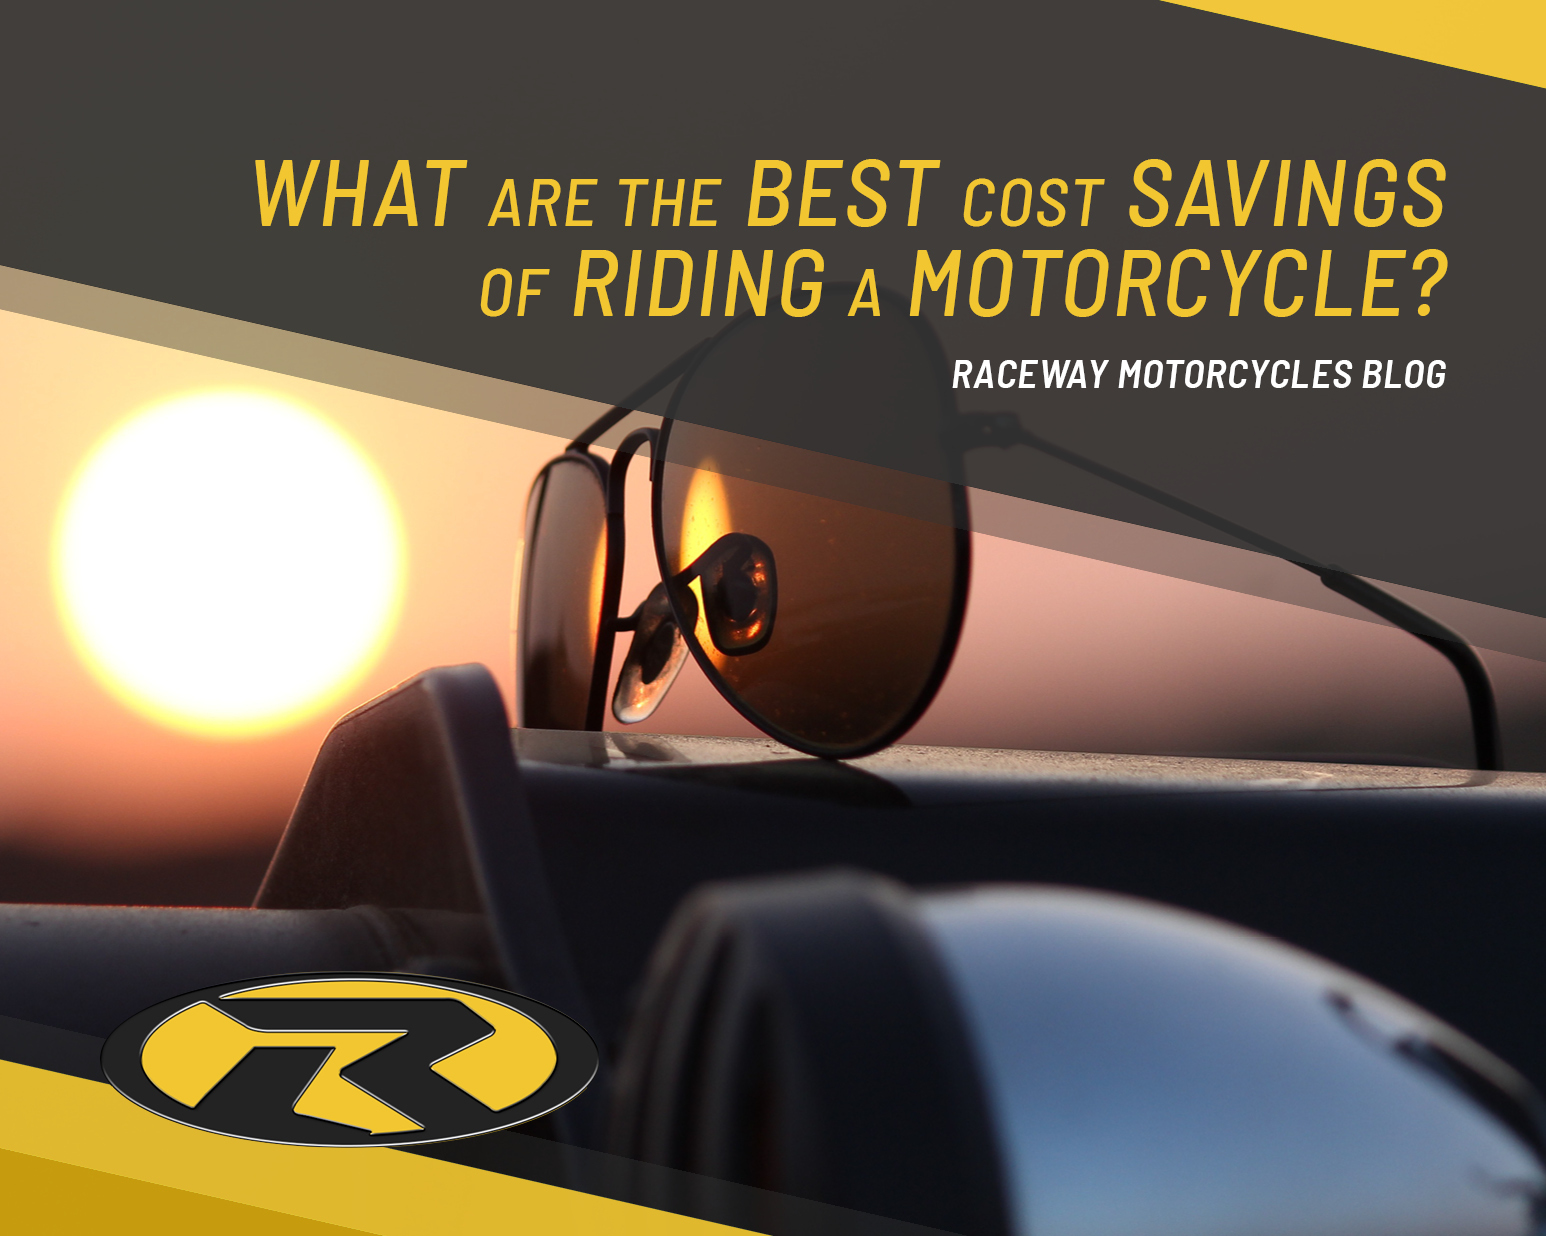 What Are the Best Cost Savings of Riding a Motorcycle?